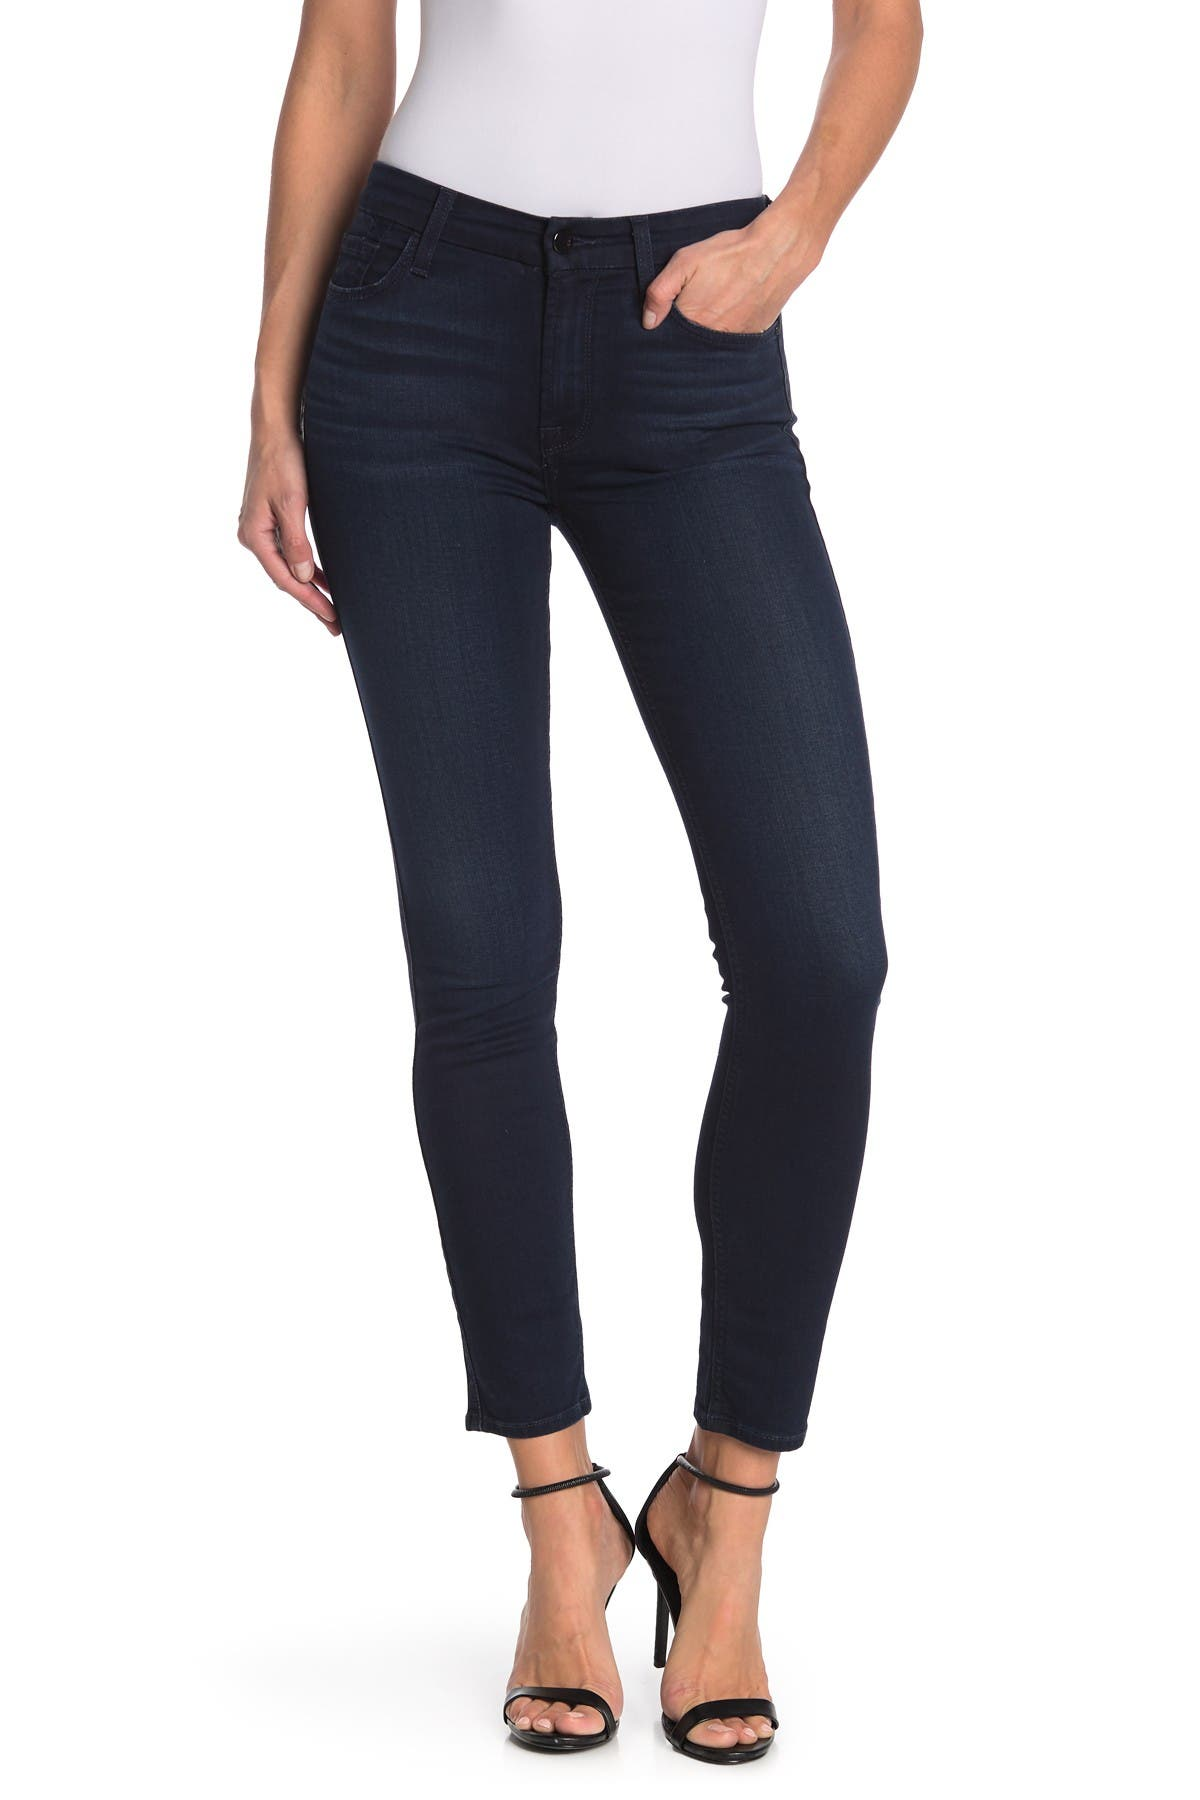 Image of Jen7 by 7 For All Mankind Skinny Stretch Jeans